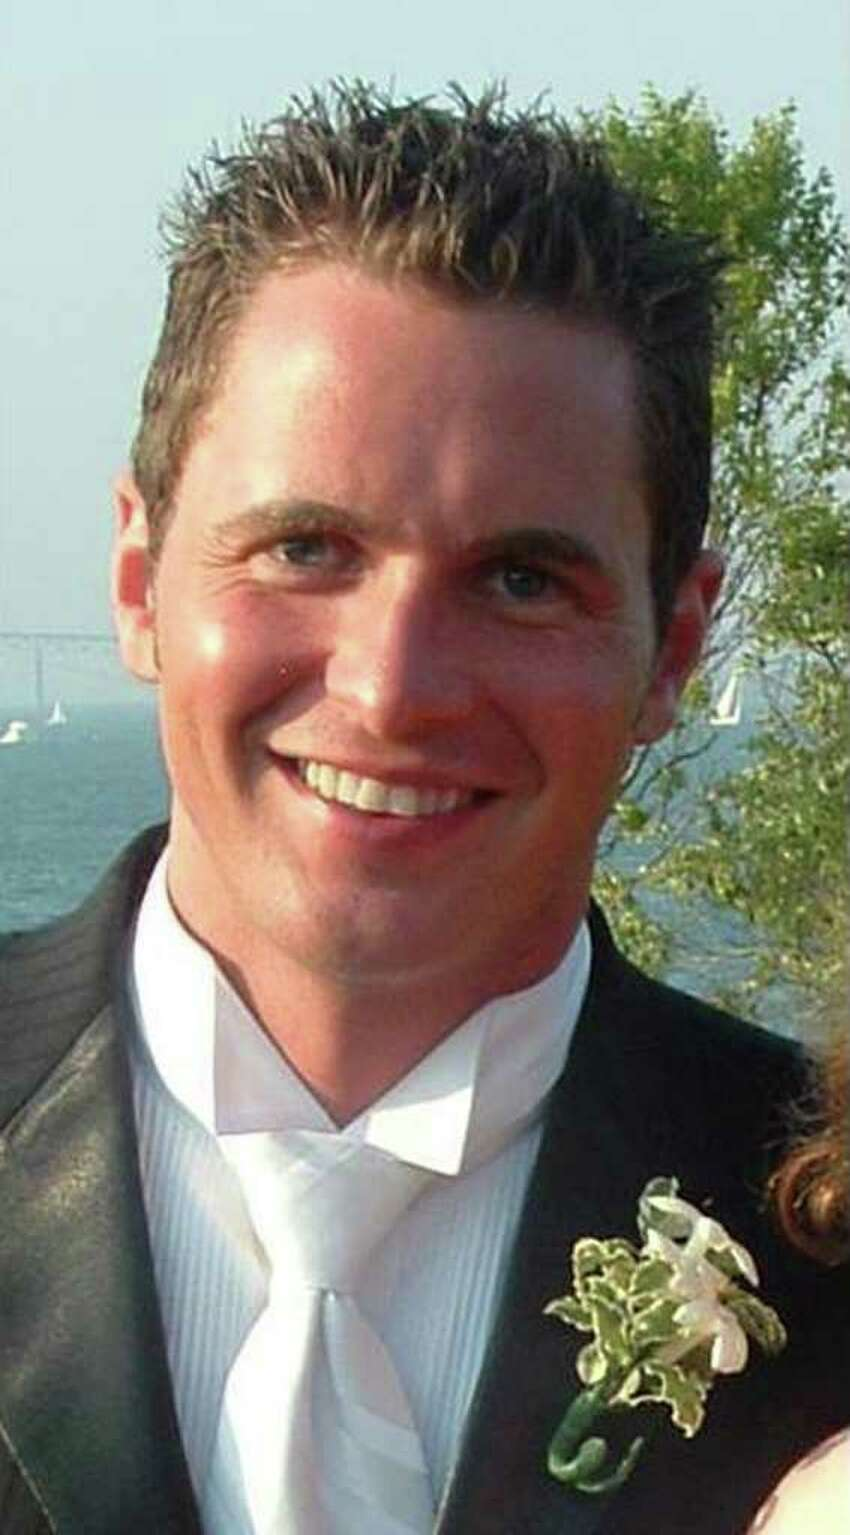 George Smith IV, the Greenwich man who disappeared while on his honeymoon cruise in the Aegean Sea in 2005.